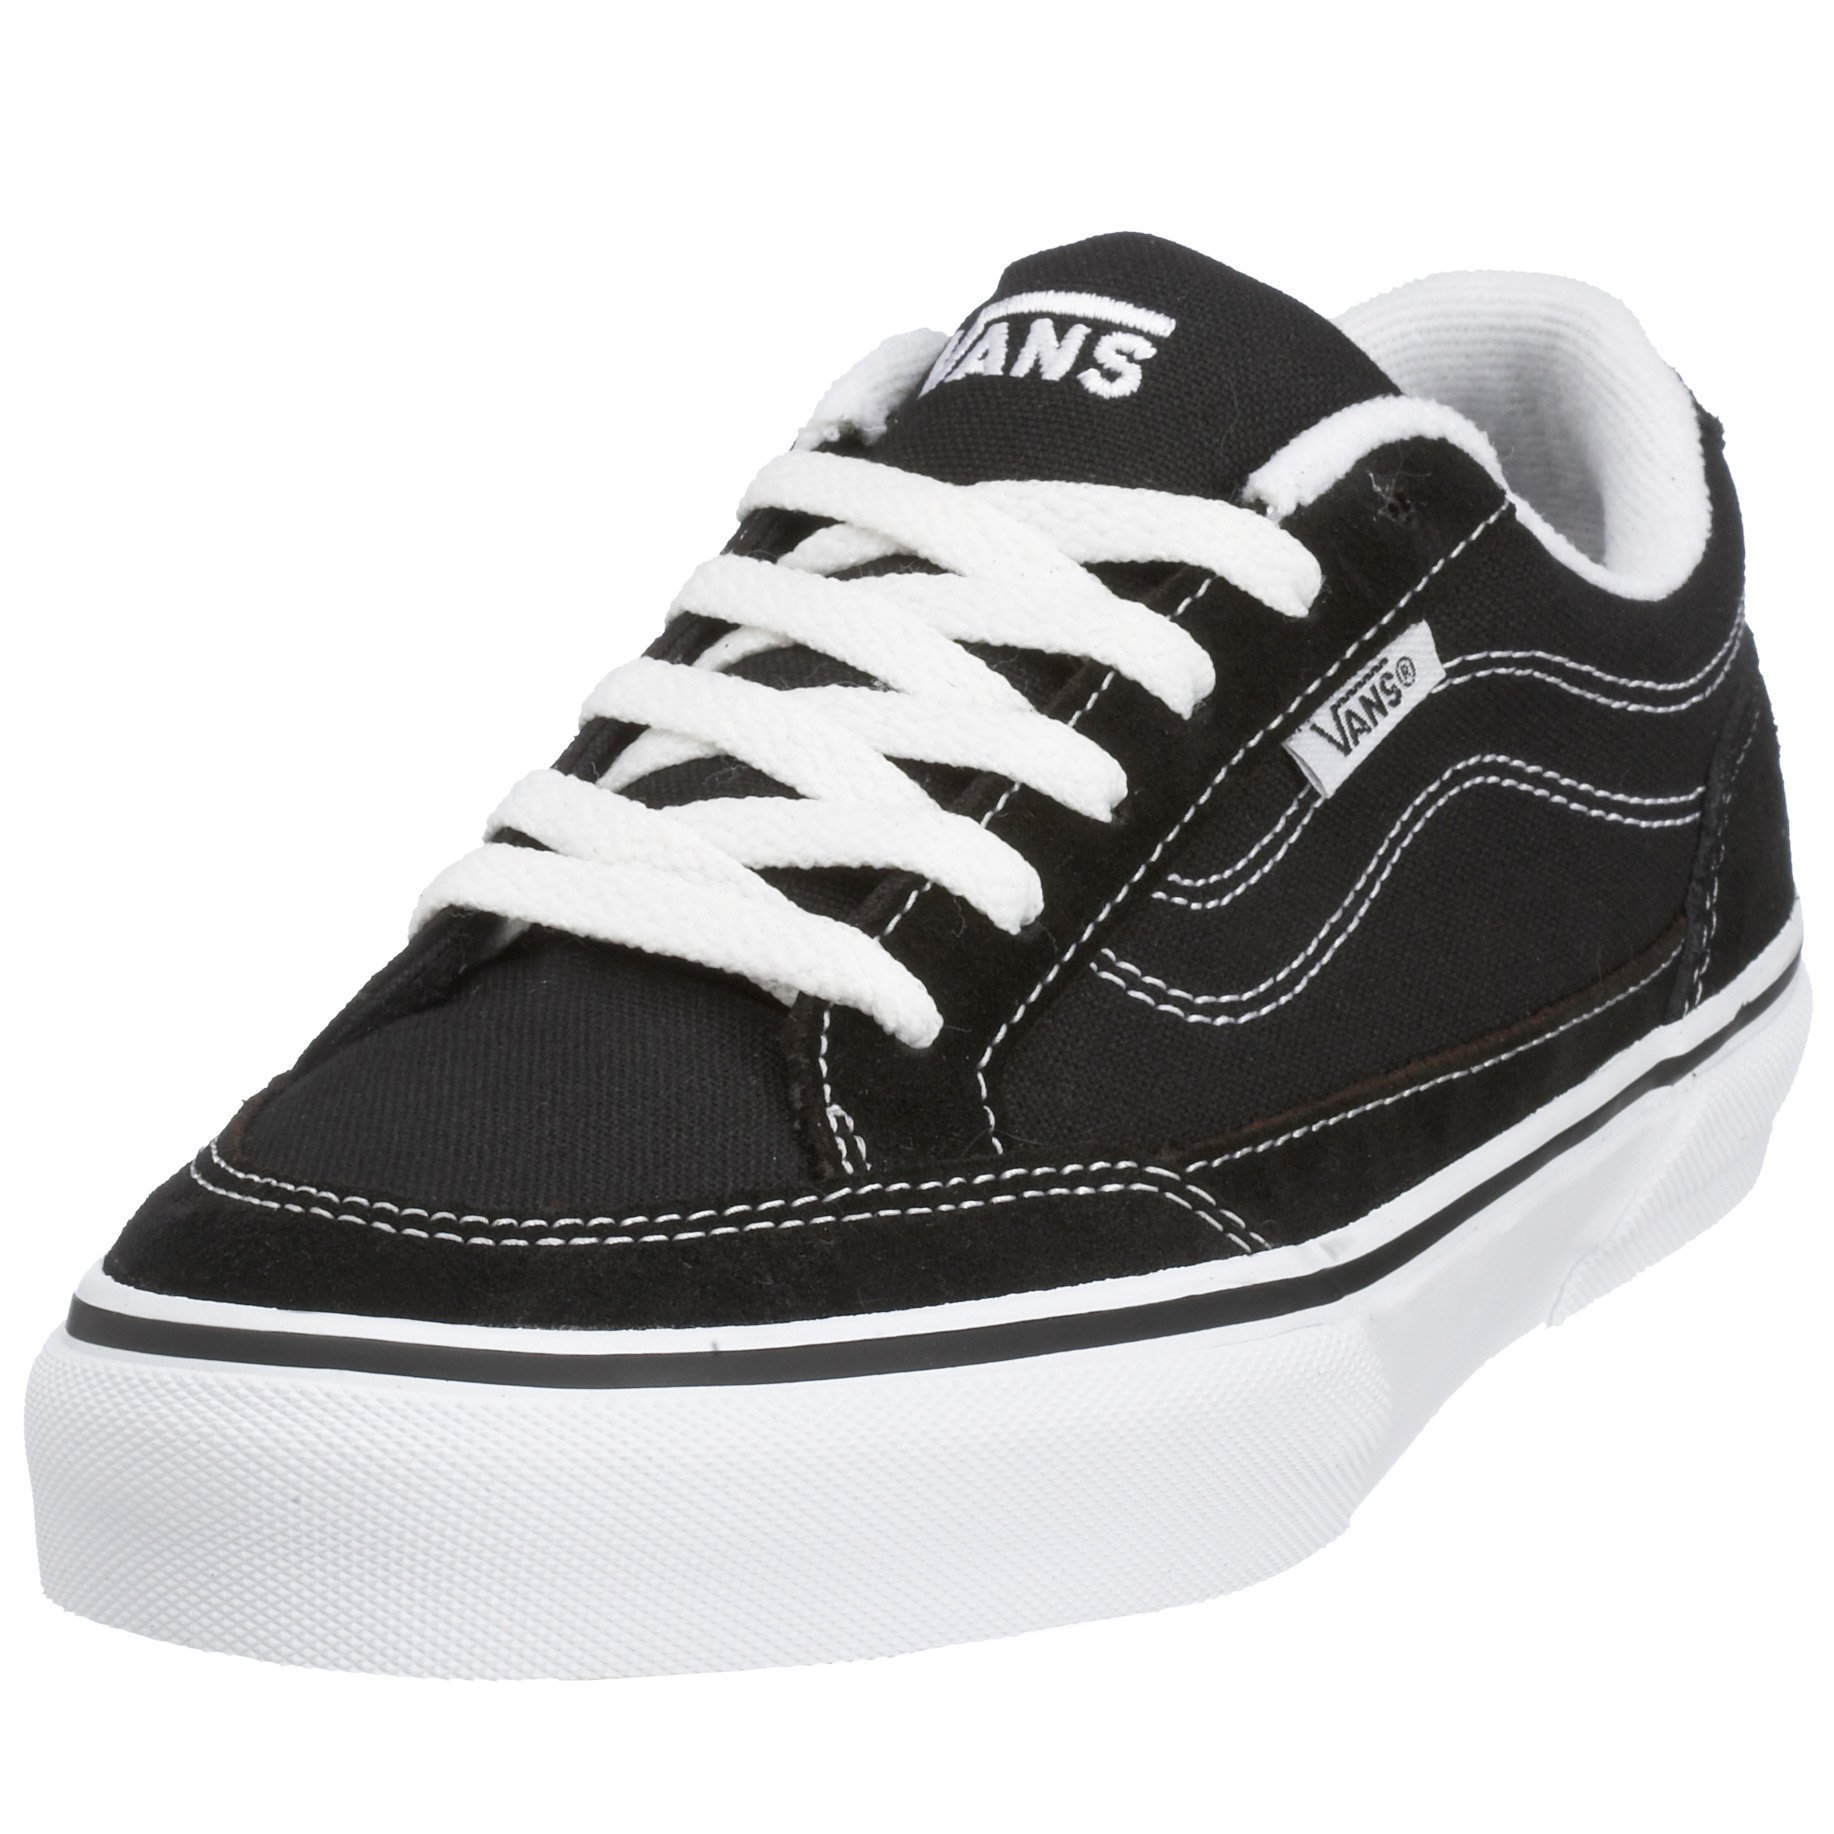 575e210f1a7f22 Galleon - Vans Men Bearcat Sneakers Skate Shoes (7